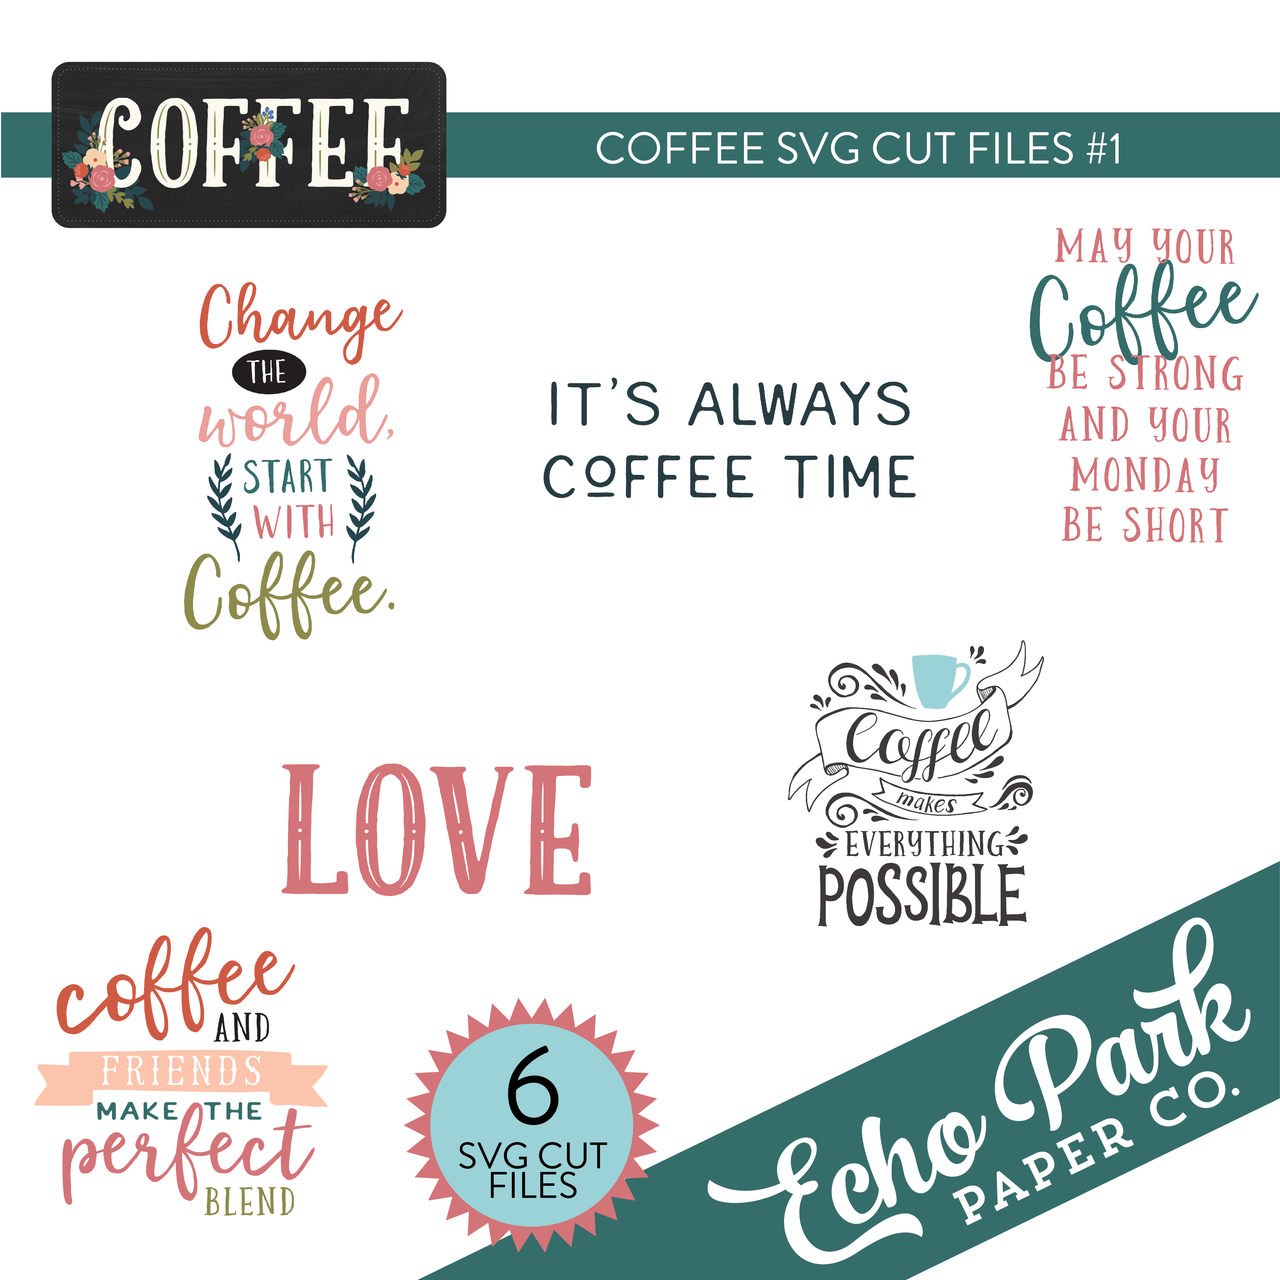 Coffee SVG Cut Files #1